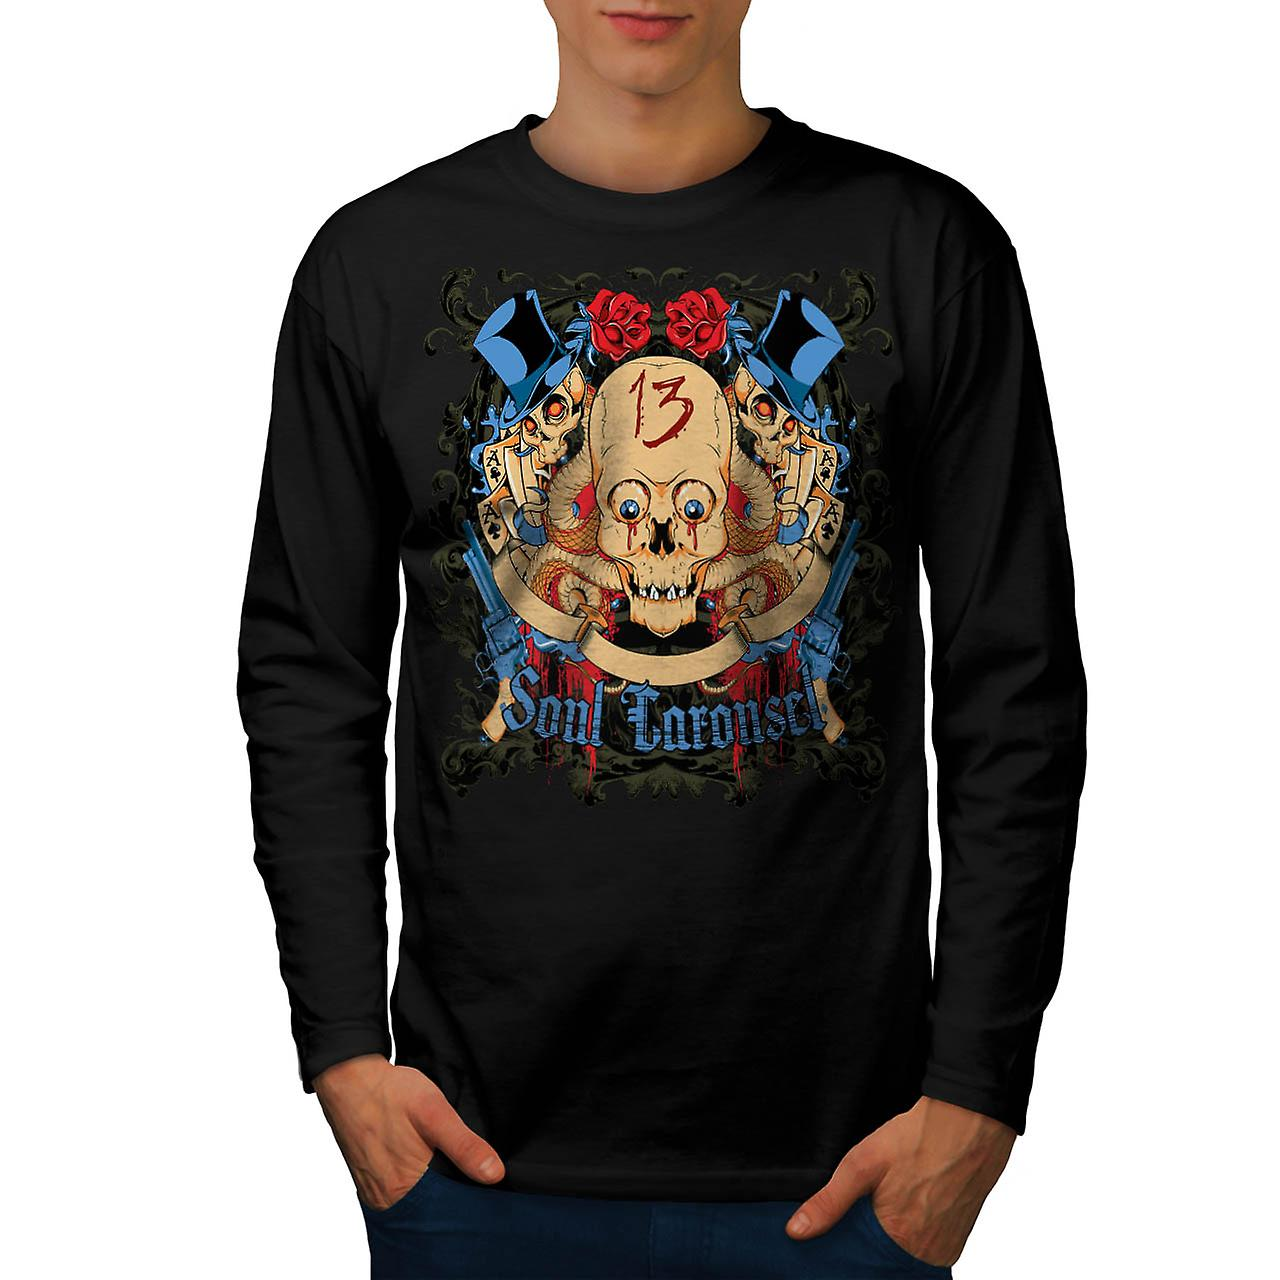 Soul Carousel Skull Terror Ride Men Black Long Sleeve T-shirt | Wellcoda